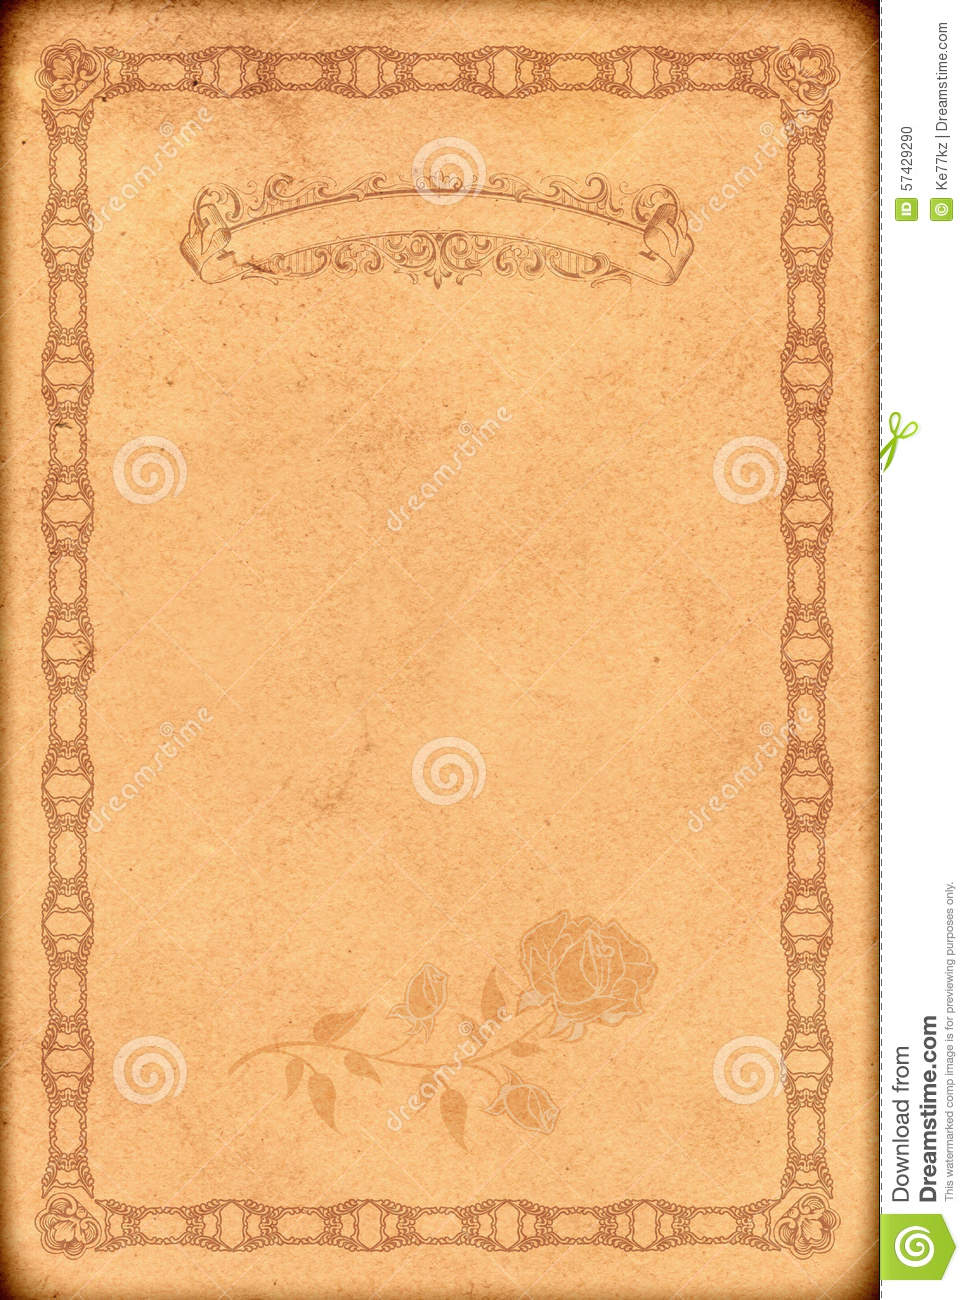 Old Fashioned Book Cover Design : Old paper backdrop with fashioned decorative border